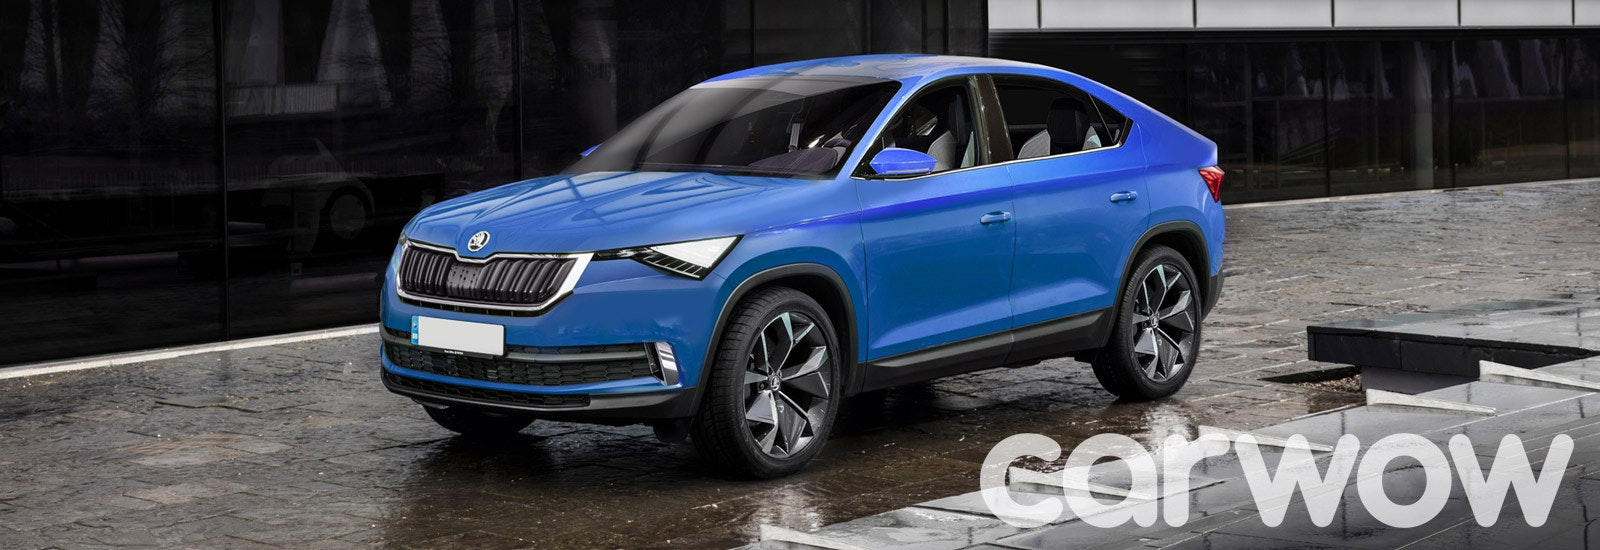 2020 Skoda Kodiaq Coupe Price Specs And Release Date Carwow